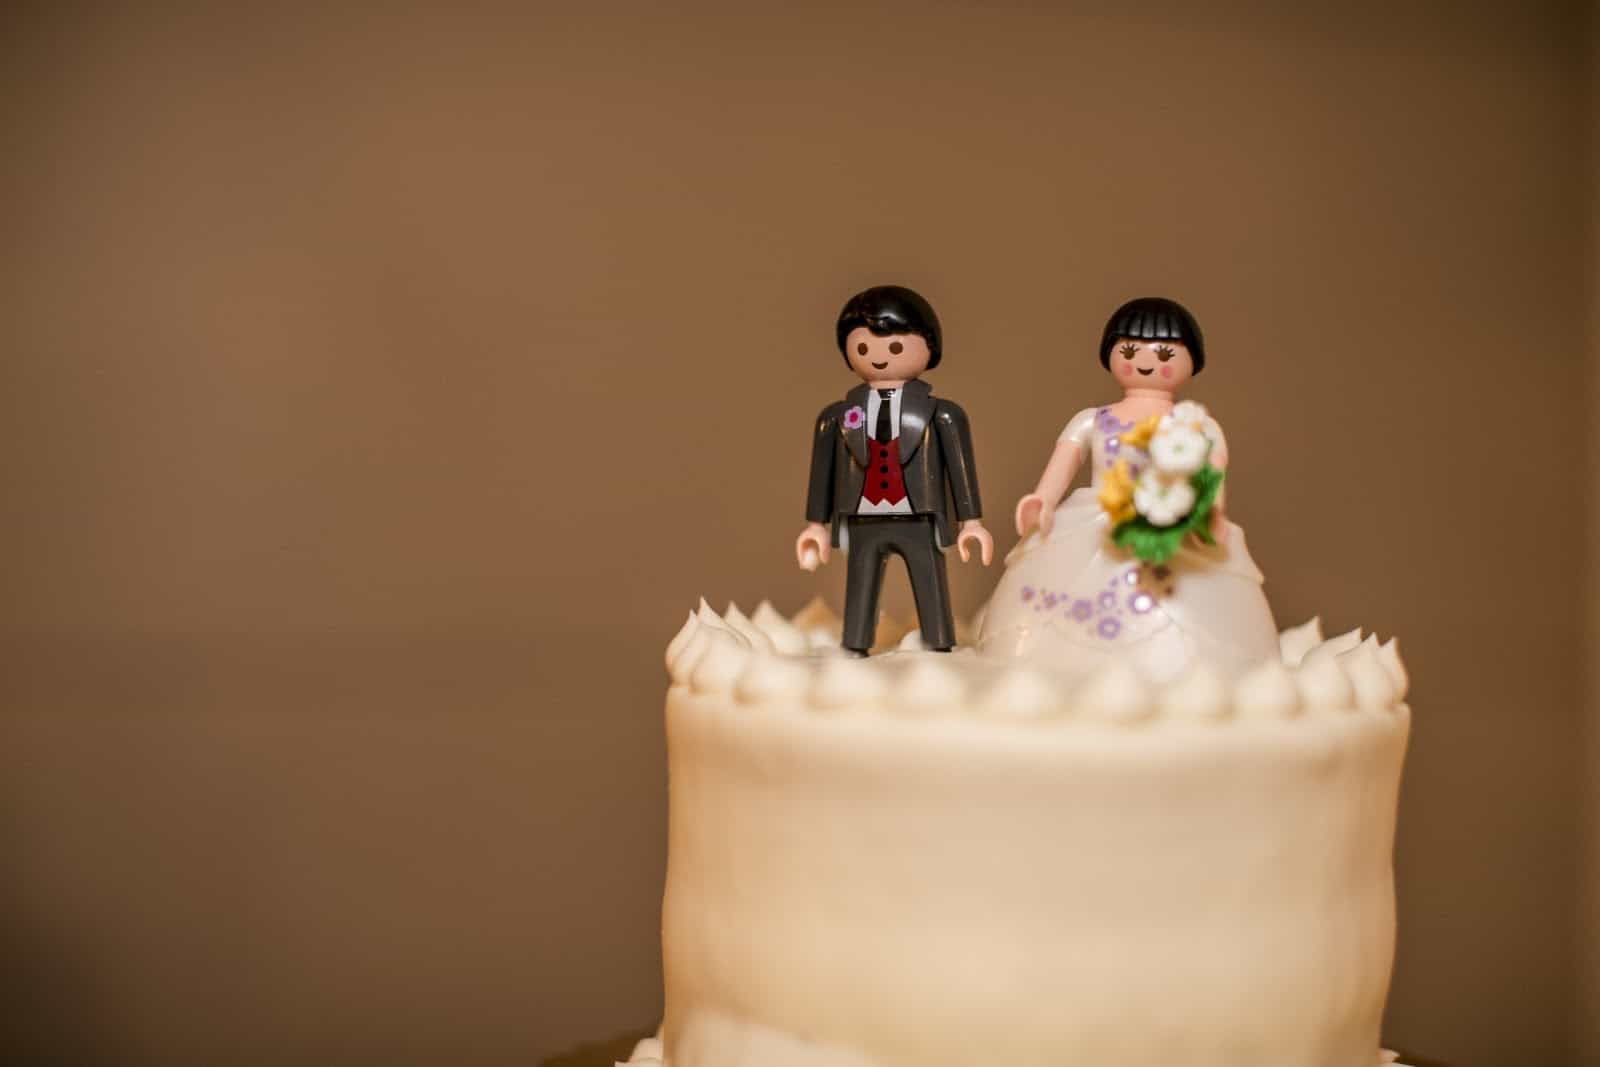 Cute Lego Wedding Cake Topper (Image 4 of 10)